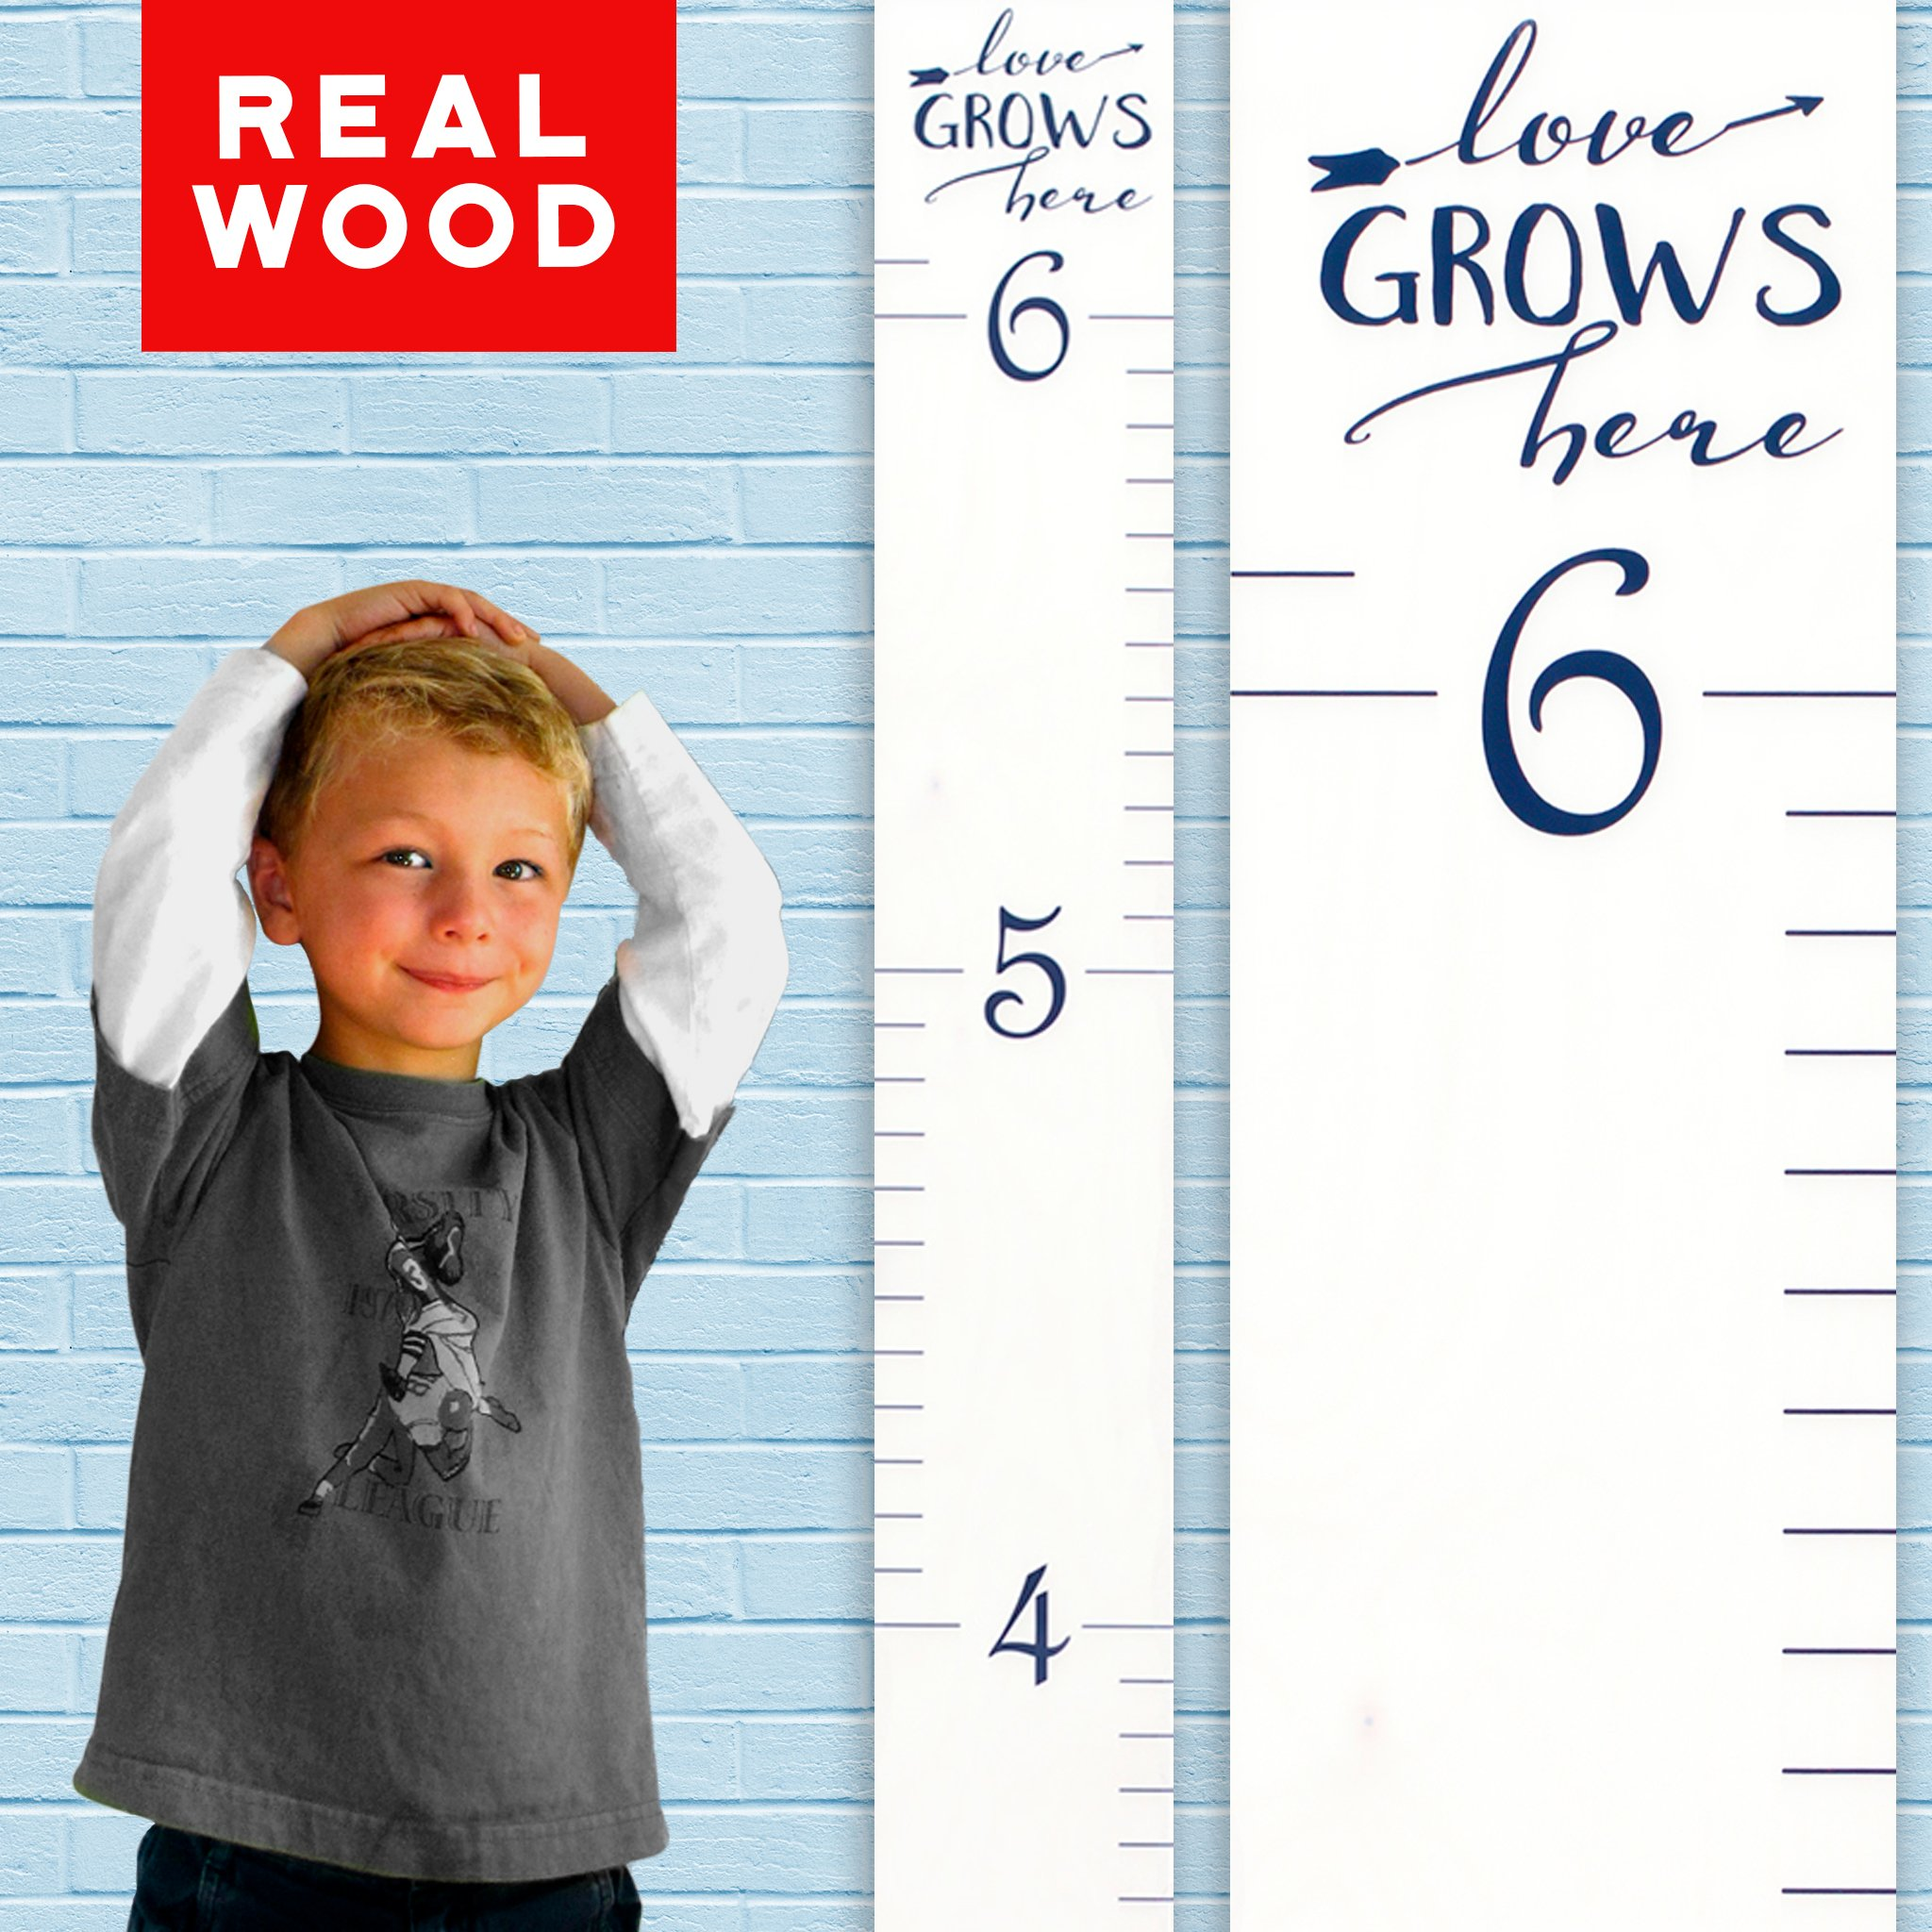 Growth Chart Art | Wooden Growth Chart Ruler Kids Height Chart for Boys + Girls | Measuring Kids Height Wall Décor | White with Navy Numerals and Saying ''Love Grows Here'' by Growth Chart Art